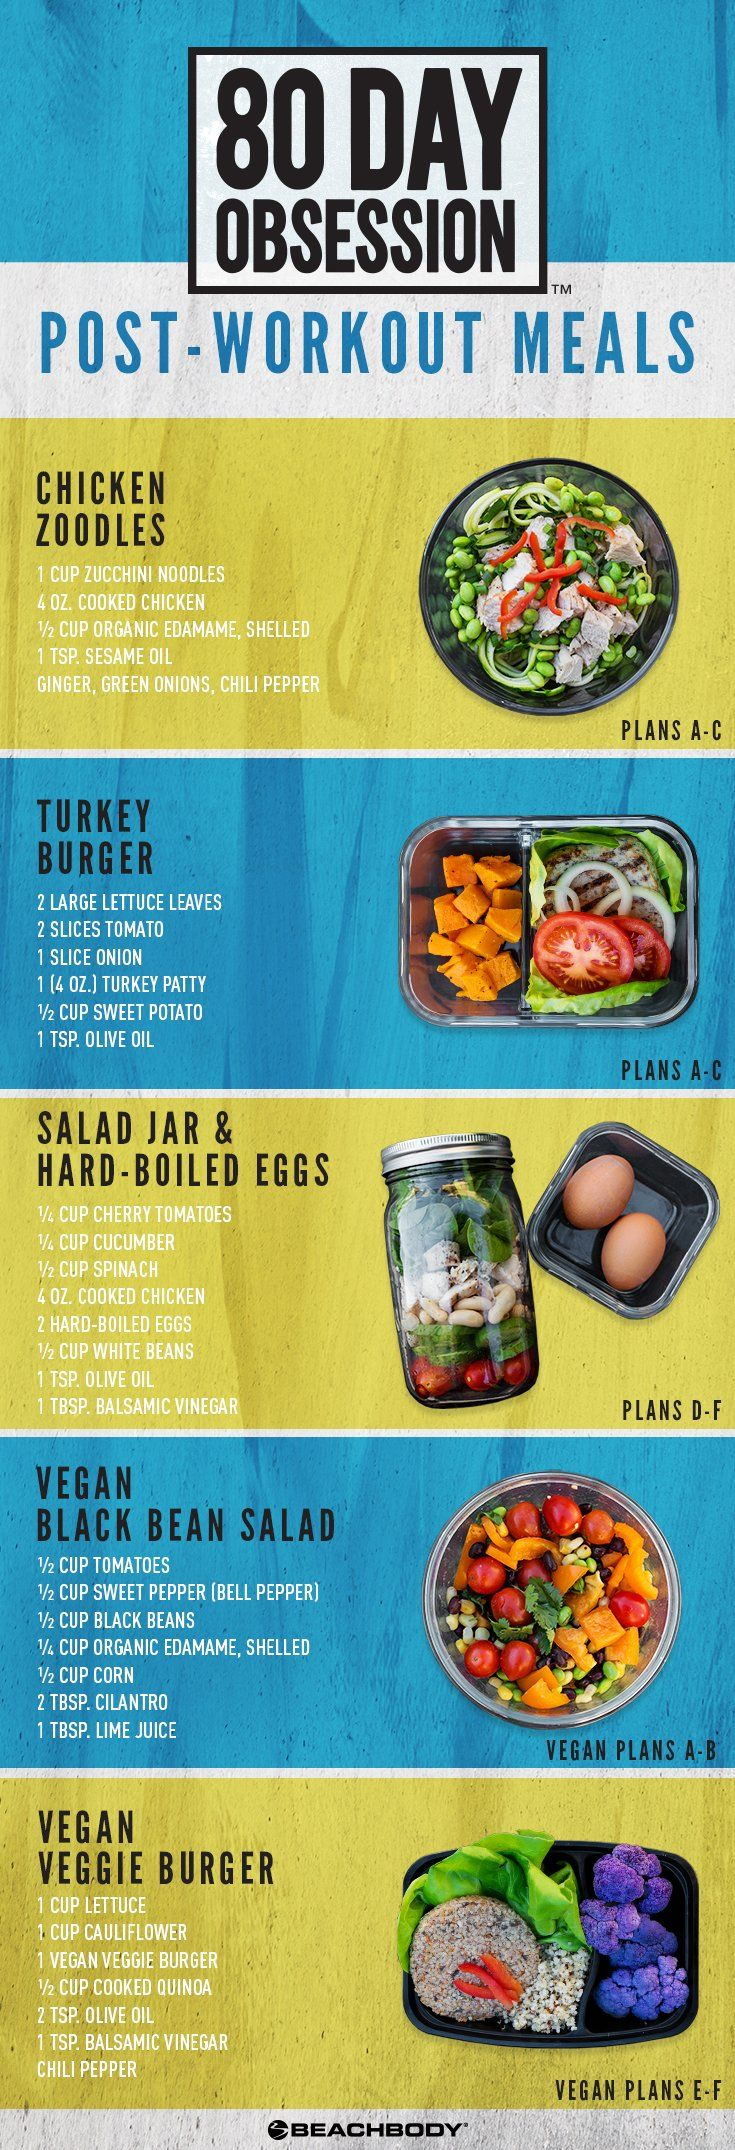 Post-Workout Meals for 80-Day Obsession, zucchini noodles, turkey burger with sweet potatoes, Mason jar salad, black bean salad, and vegan veggie burger. meal prep // 80 Day Obsession meal prep // meal planning // how to lose weight fast // at home workouts // Beachbody programs // Beachbody Blog // #80dayobsession #mealplan #mealprep #mealprepforweightloss #nutrition #weightloss #autumncalabrese